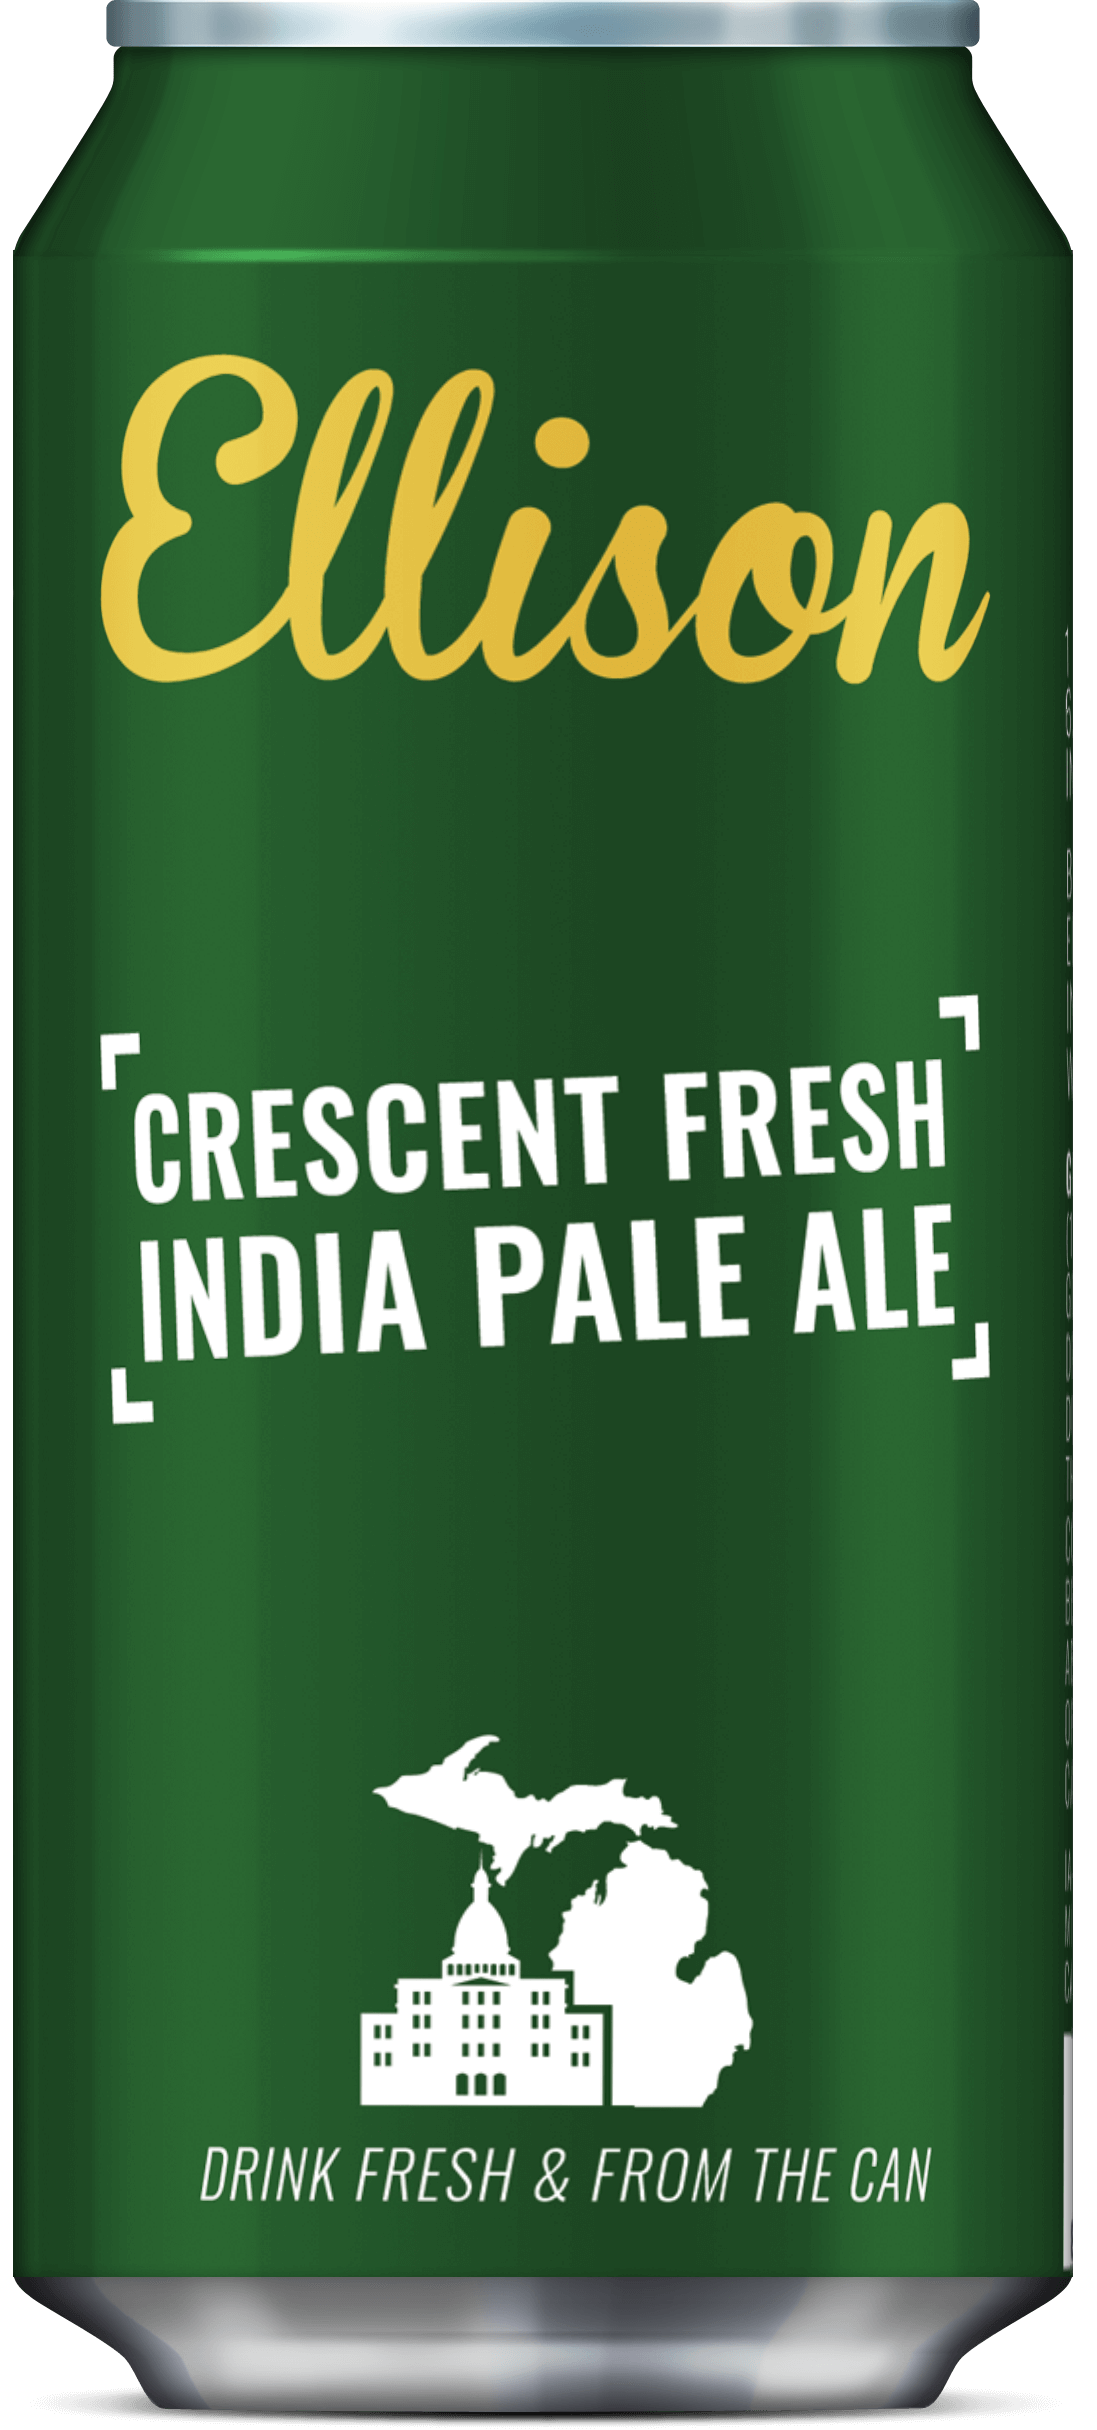 Ellison_Brewery_Crescent_Fresh_Image